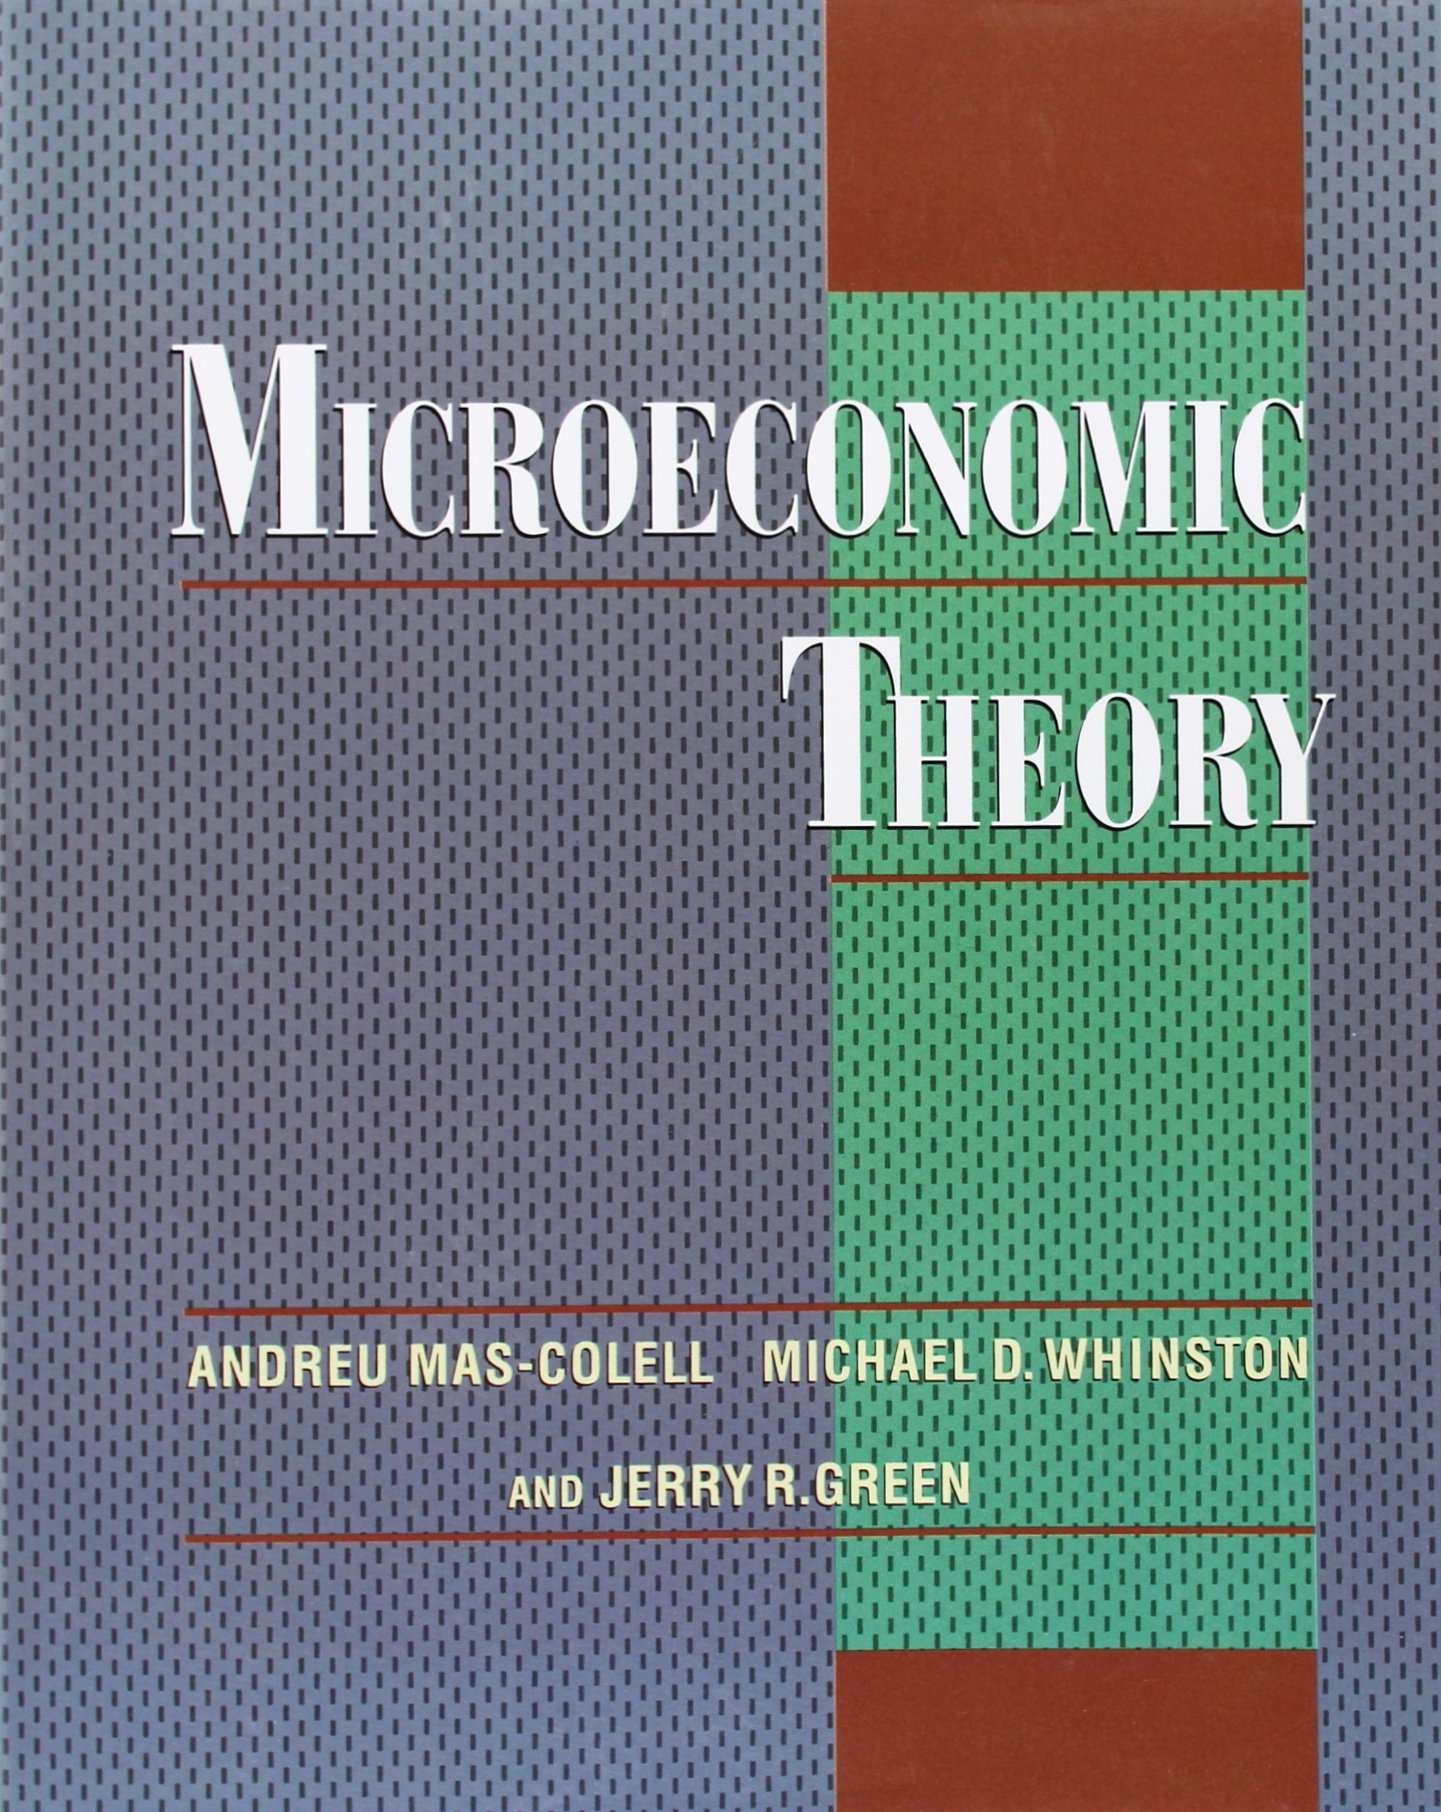 Microeconomic Theory: Amazon.co.uk: Mas-Colell, Andreu, Whinston, Michael  D., Green, Jerry R.: 8601300133041: Books